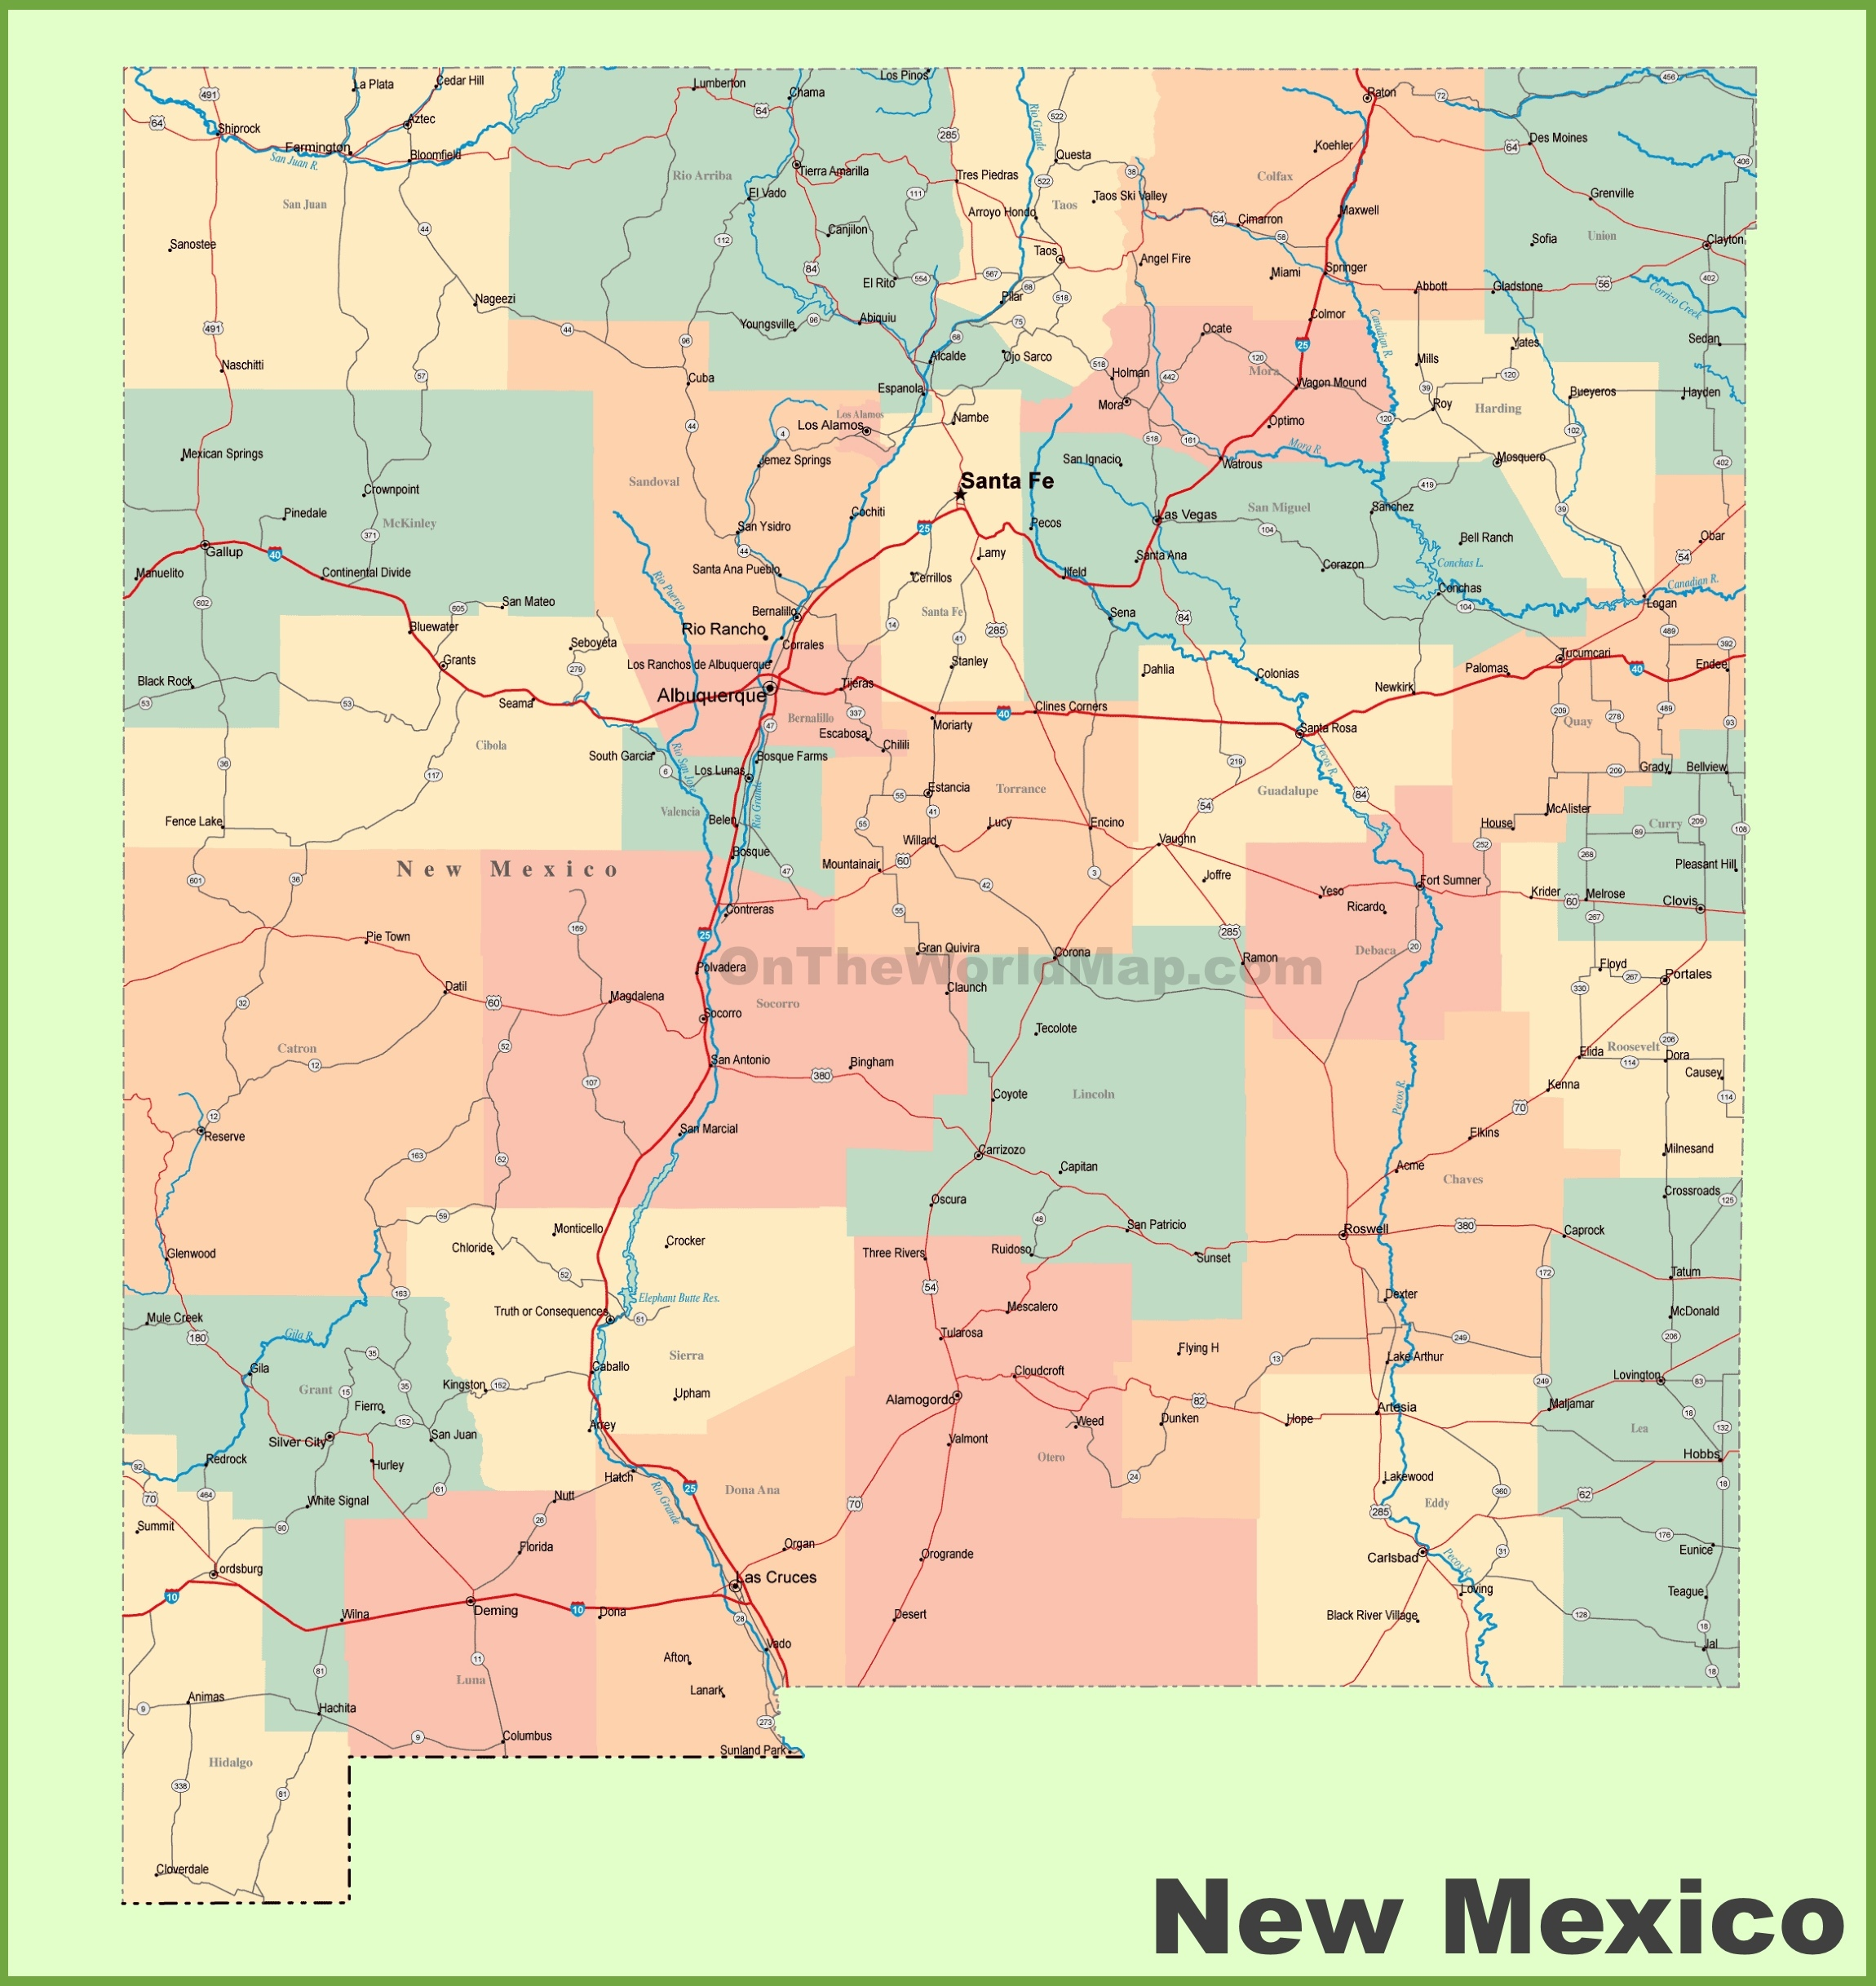 New Mexico State Maps USA Maps of New Mexico NM